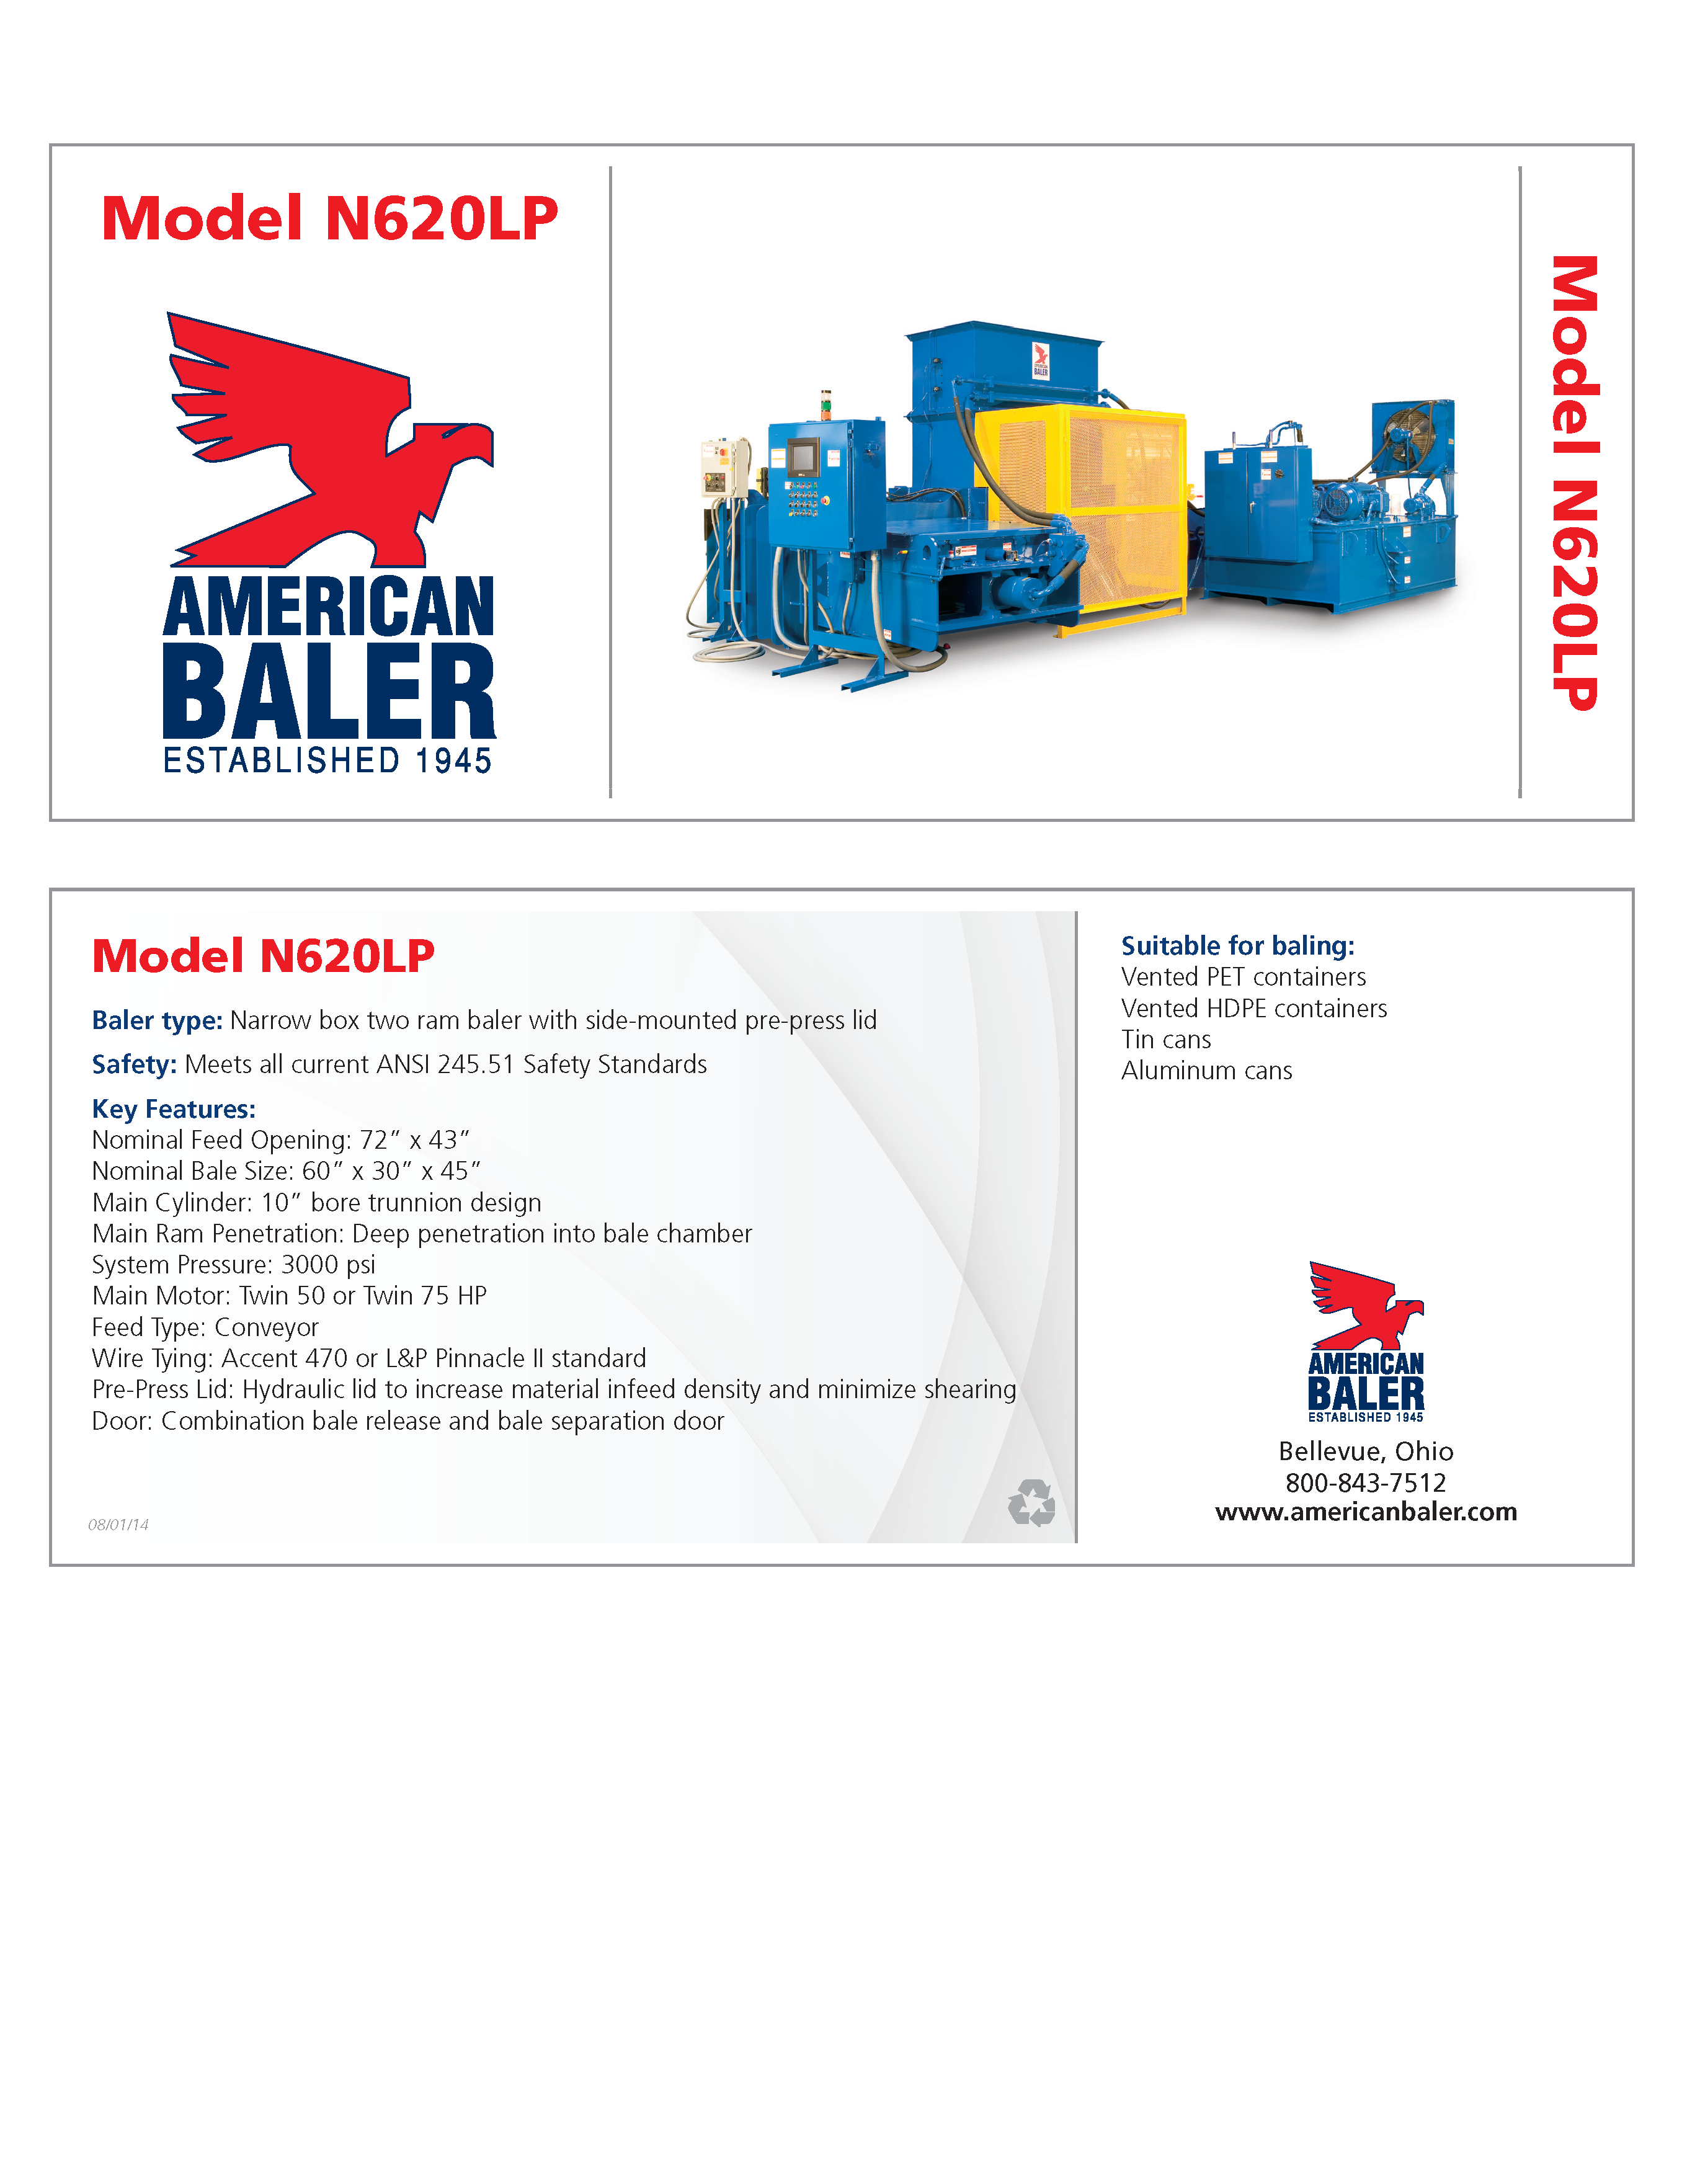 Learn more about the N620LP Baler in the American Baler Brochure